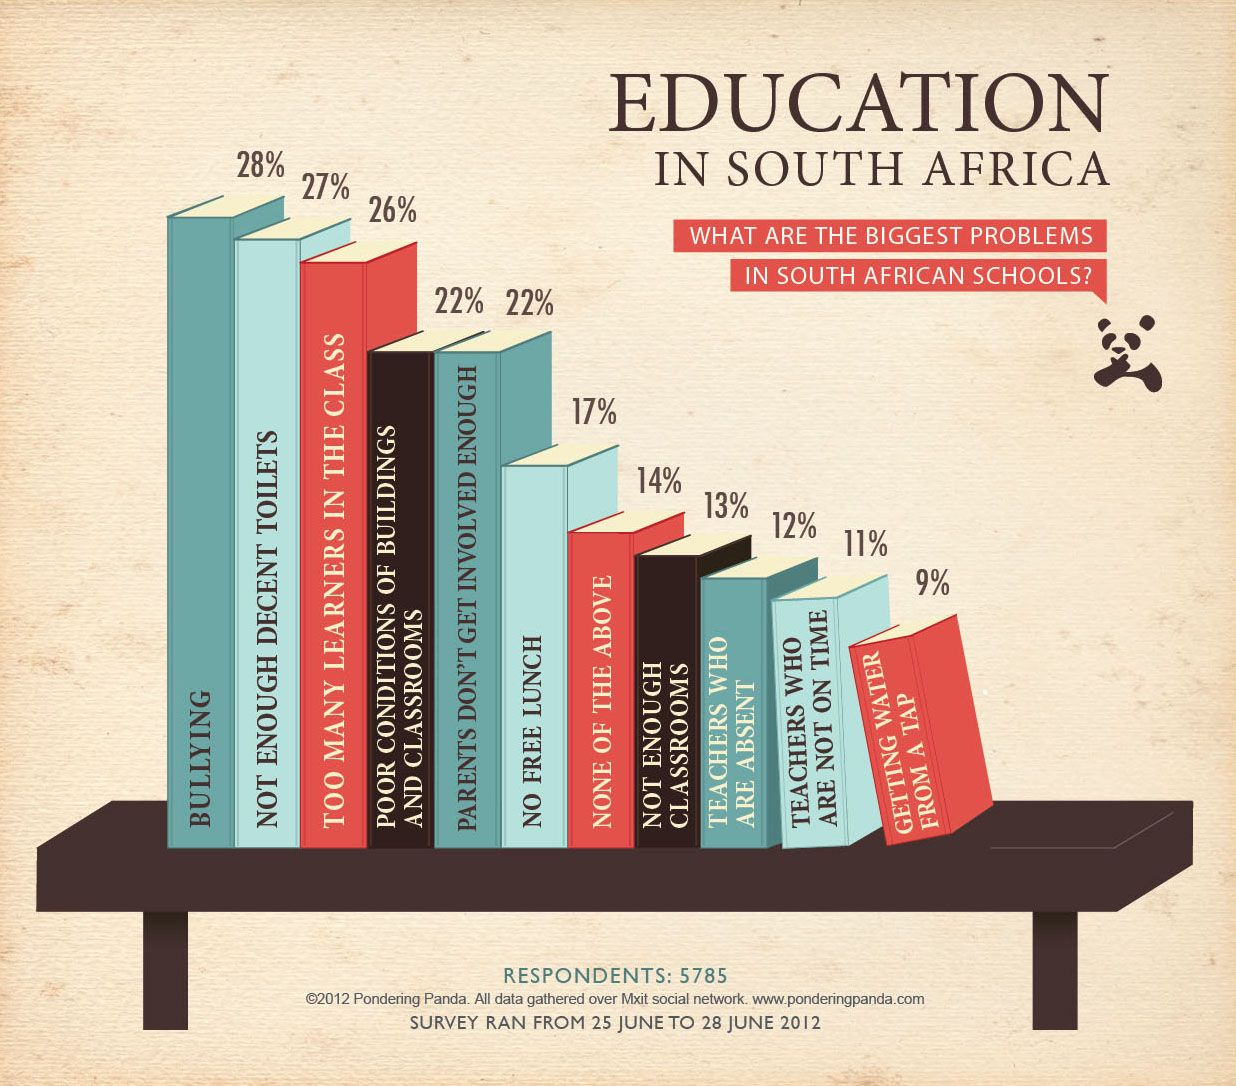 Education in South Africa What are the biggest problems